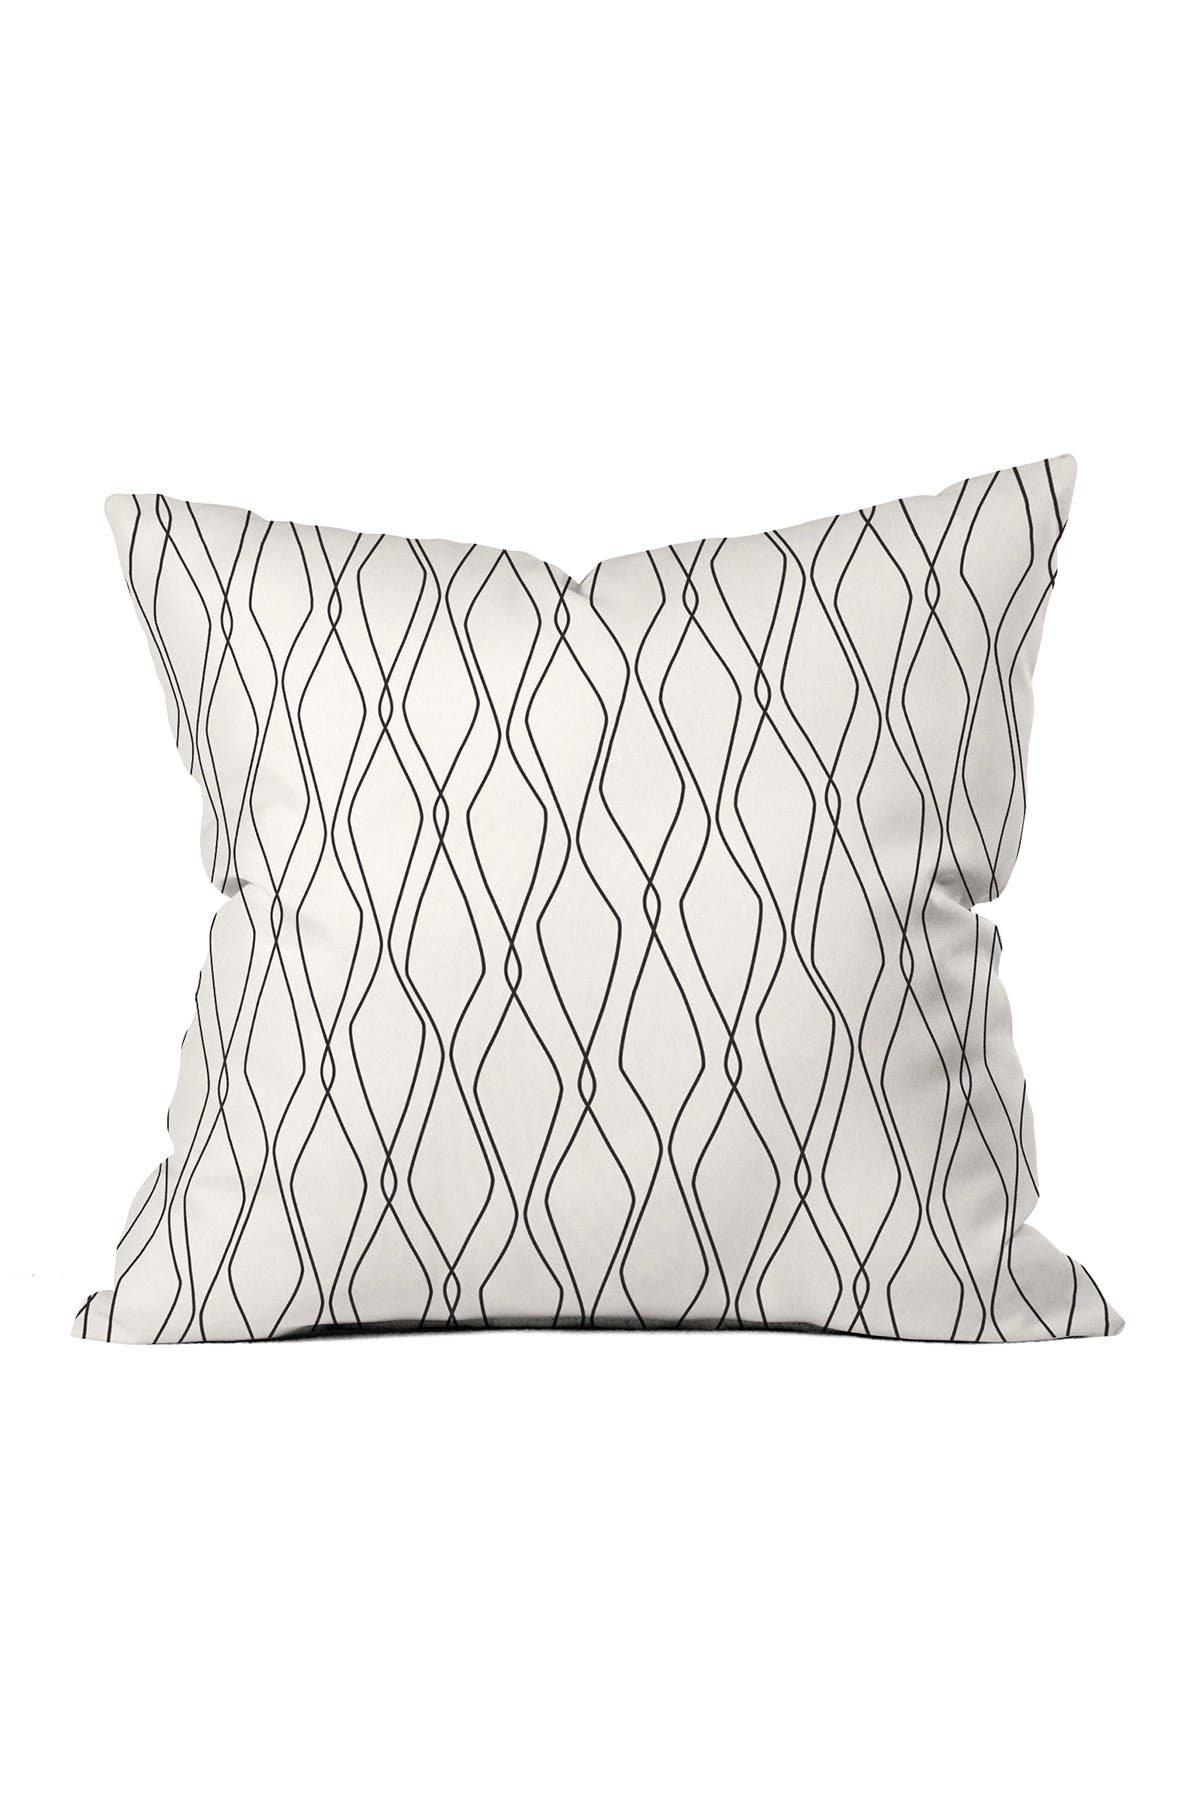 Deny Designs Heather Dutton Fuge Stone Throw Pillow Nordstrom Rack